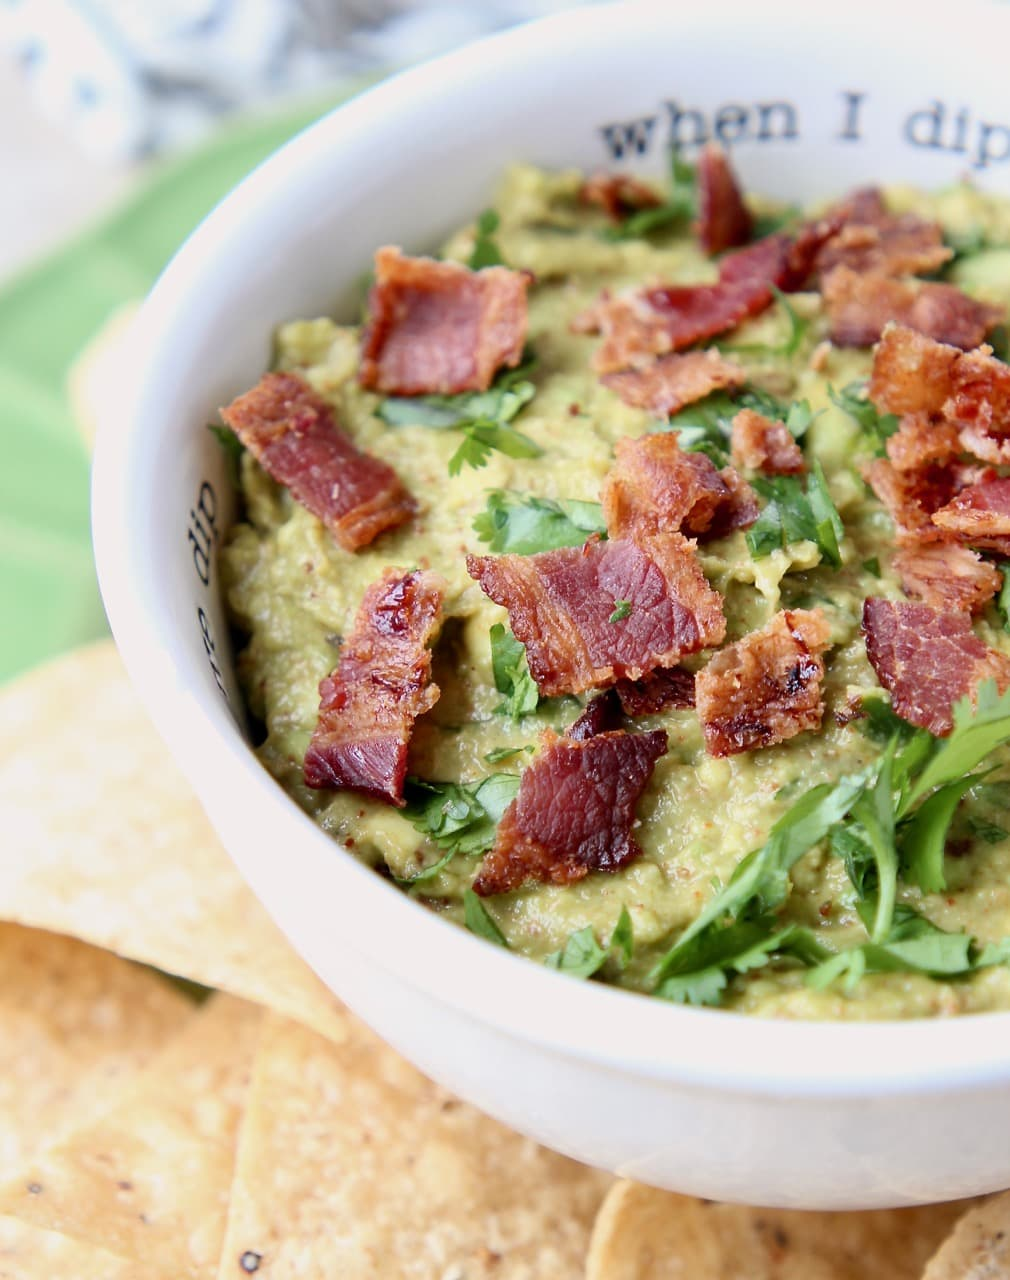 Guacamole in white bowl topped with diced cooked bacon pieces and fresh cilantro